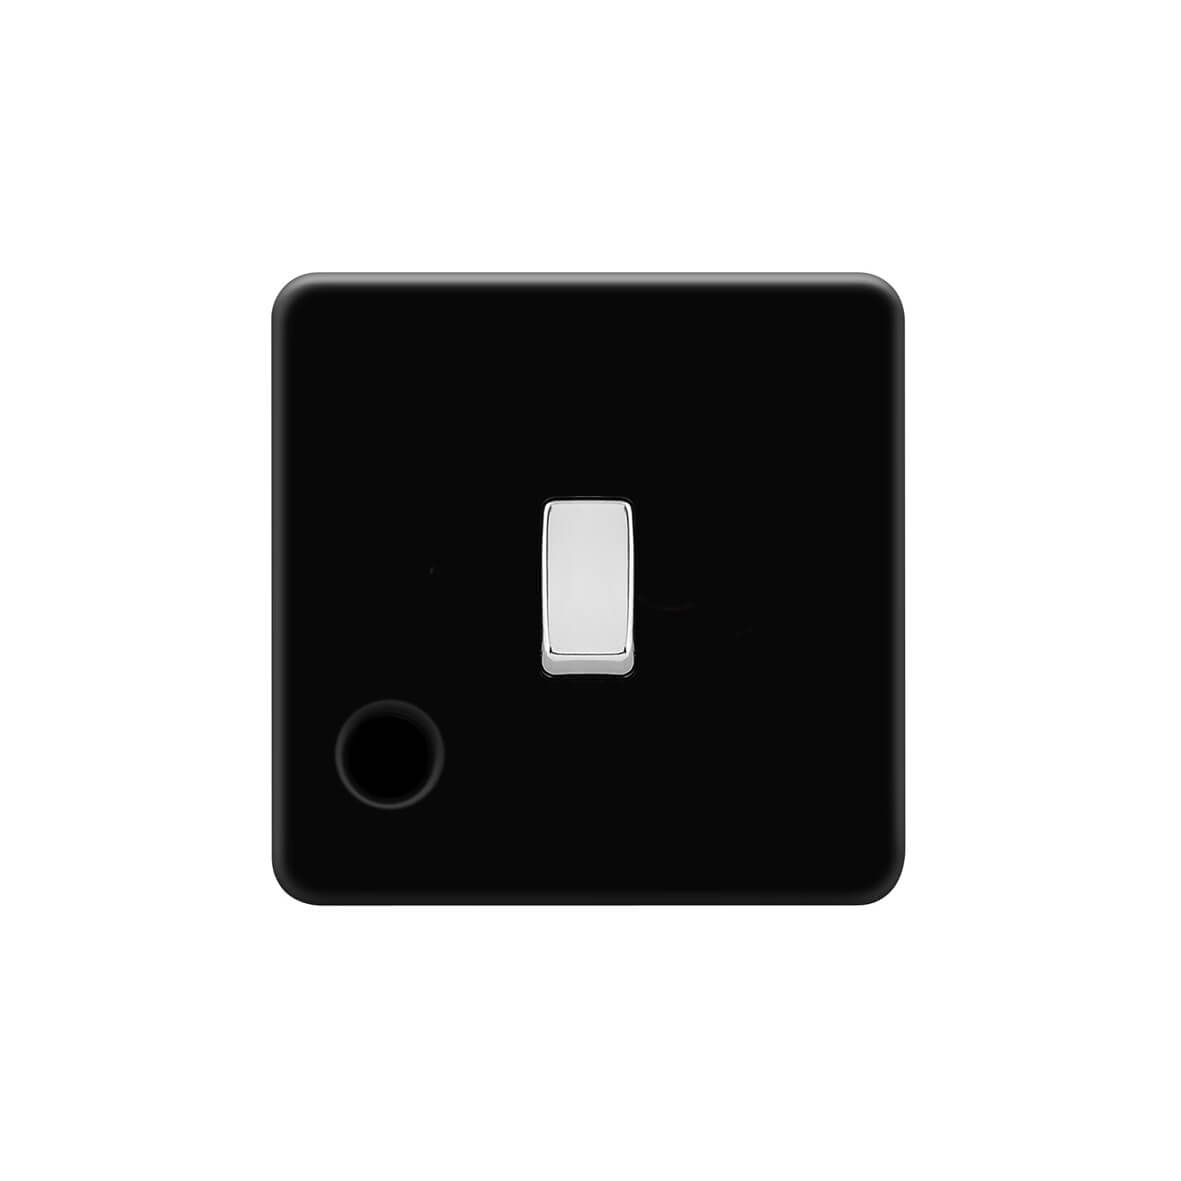 45A FLEX OUTLET FLAT PLATE WITH 3 WAY TERMINAL BLOCK BLACK NICKEL